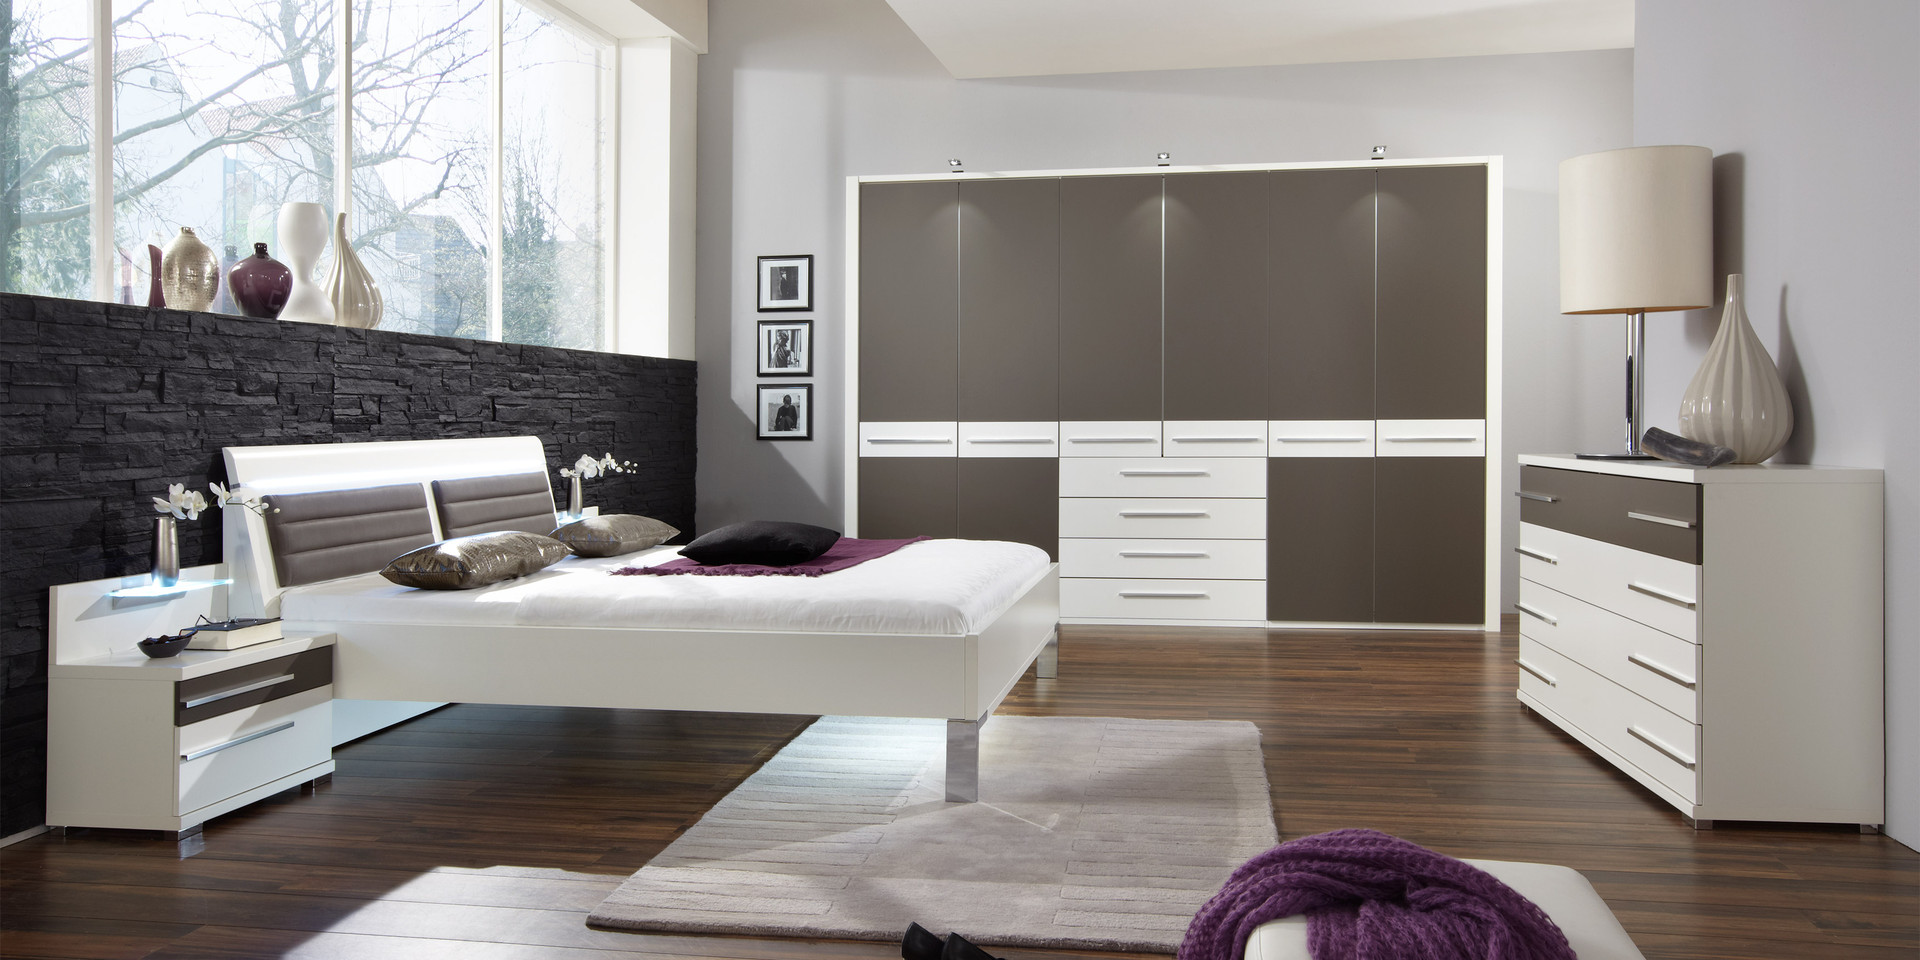 erleben sie das schlafzimmer pasadena m belhersteller wiemann. Black Bedroom Furniture Sets. Home Design Ideas